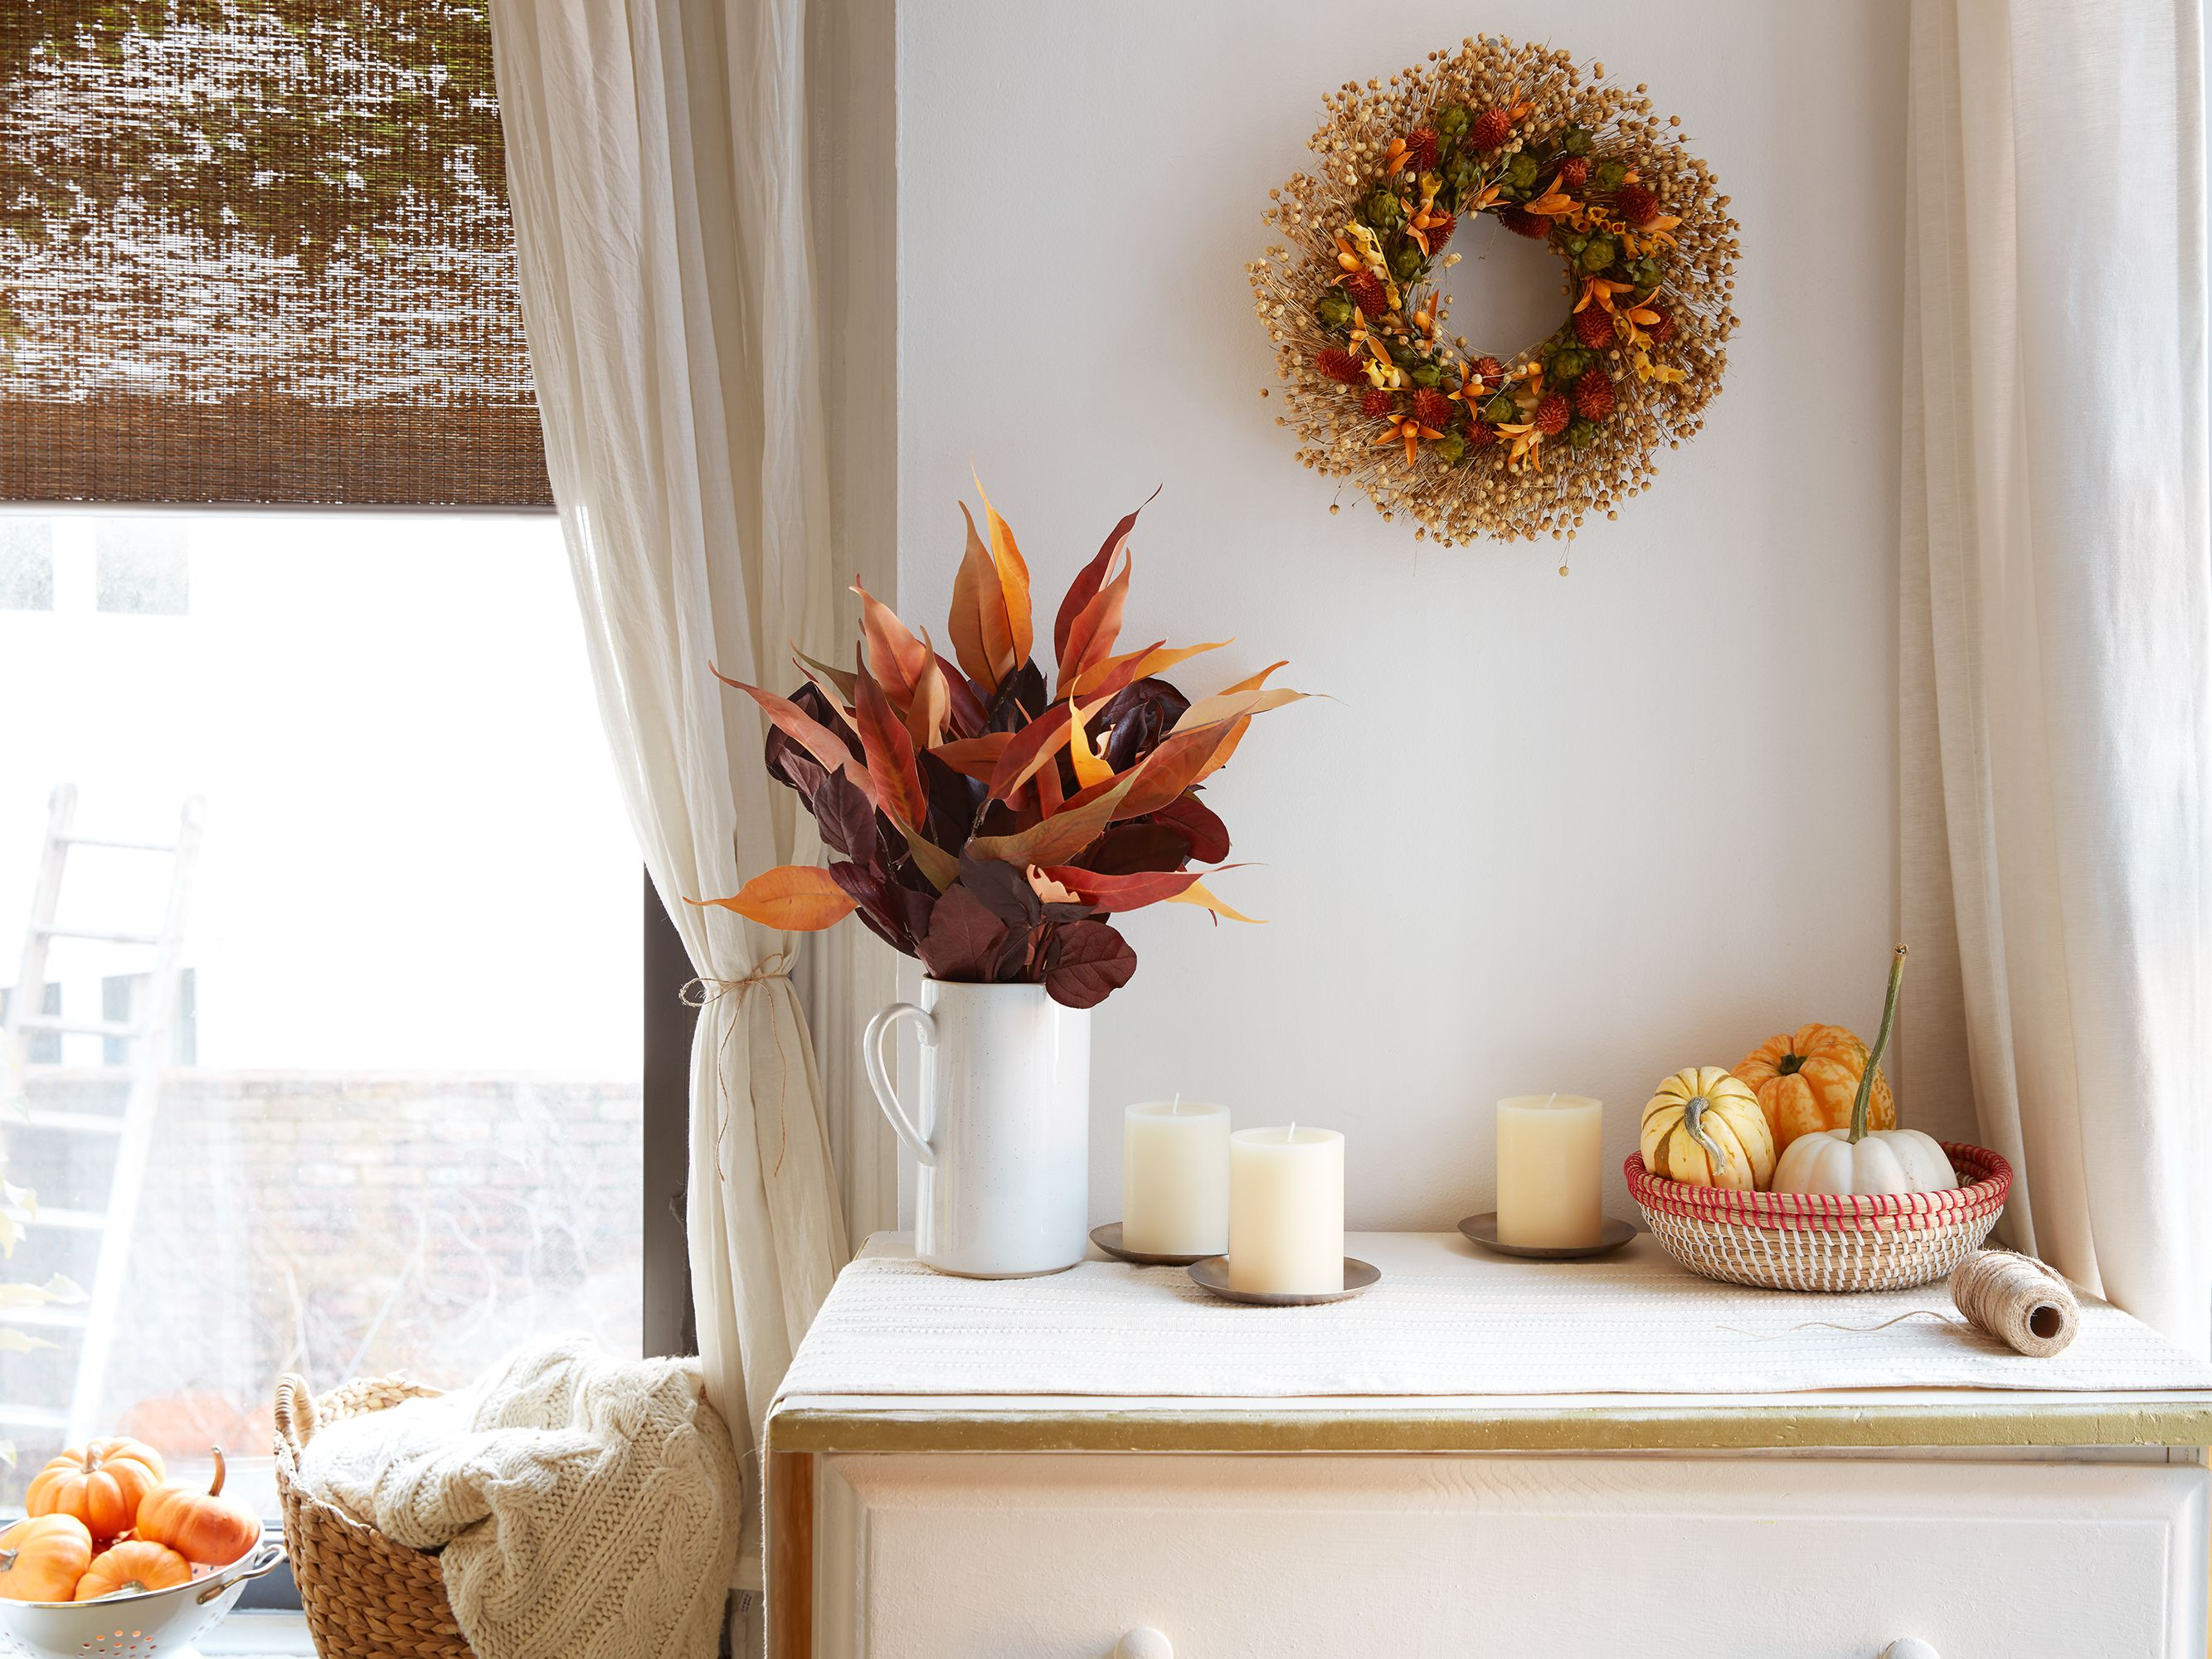 13 Thanksgiving Home Decor Items For